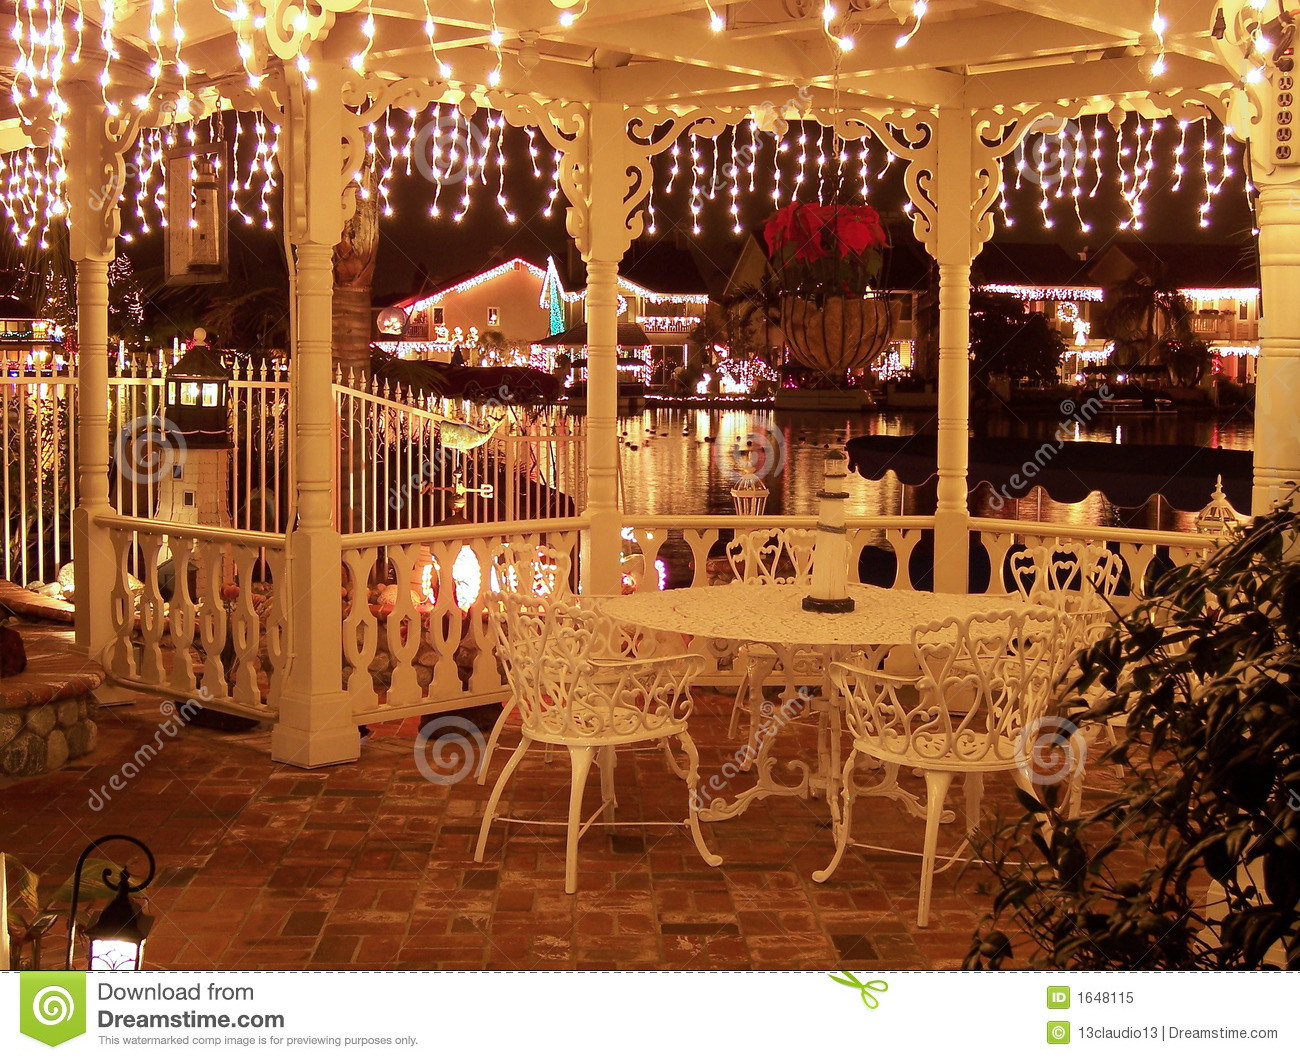 Christmas Lights Decorated Gazebo Overlooking A Reflective